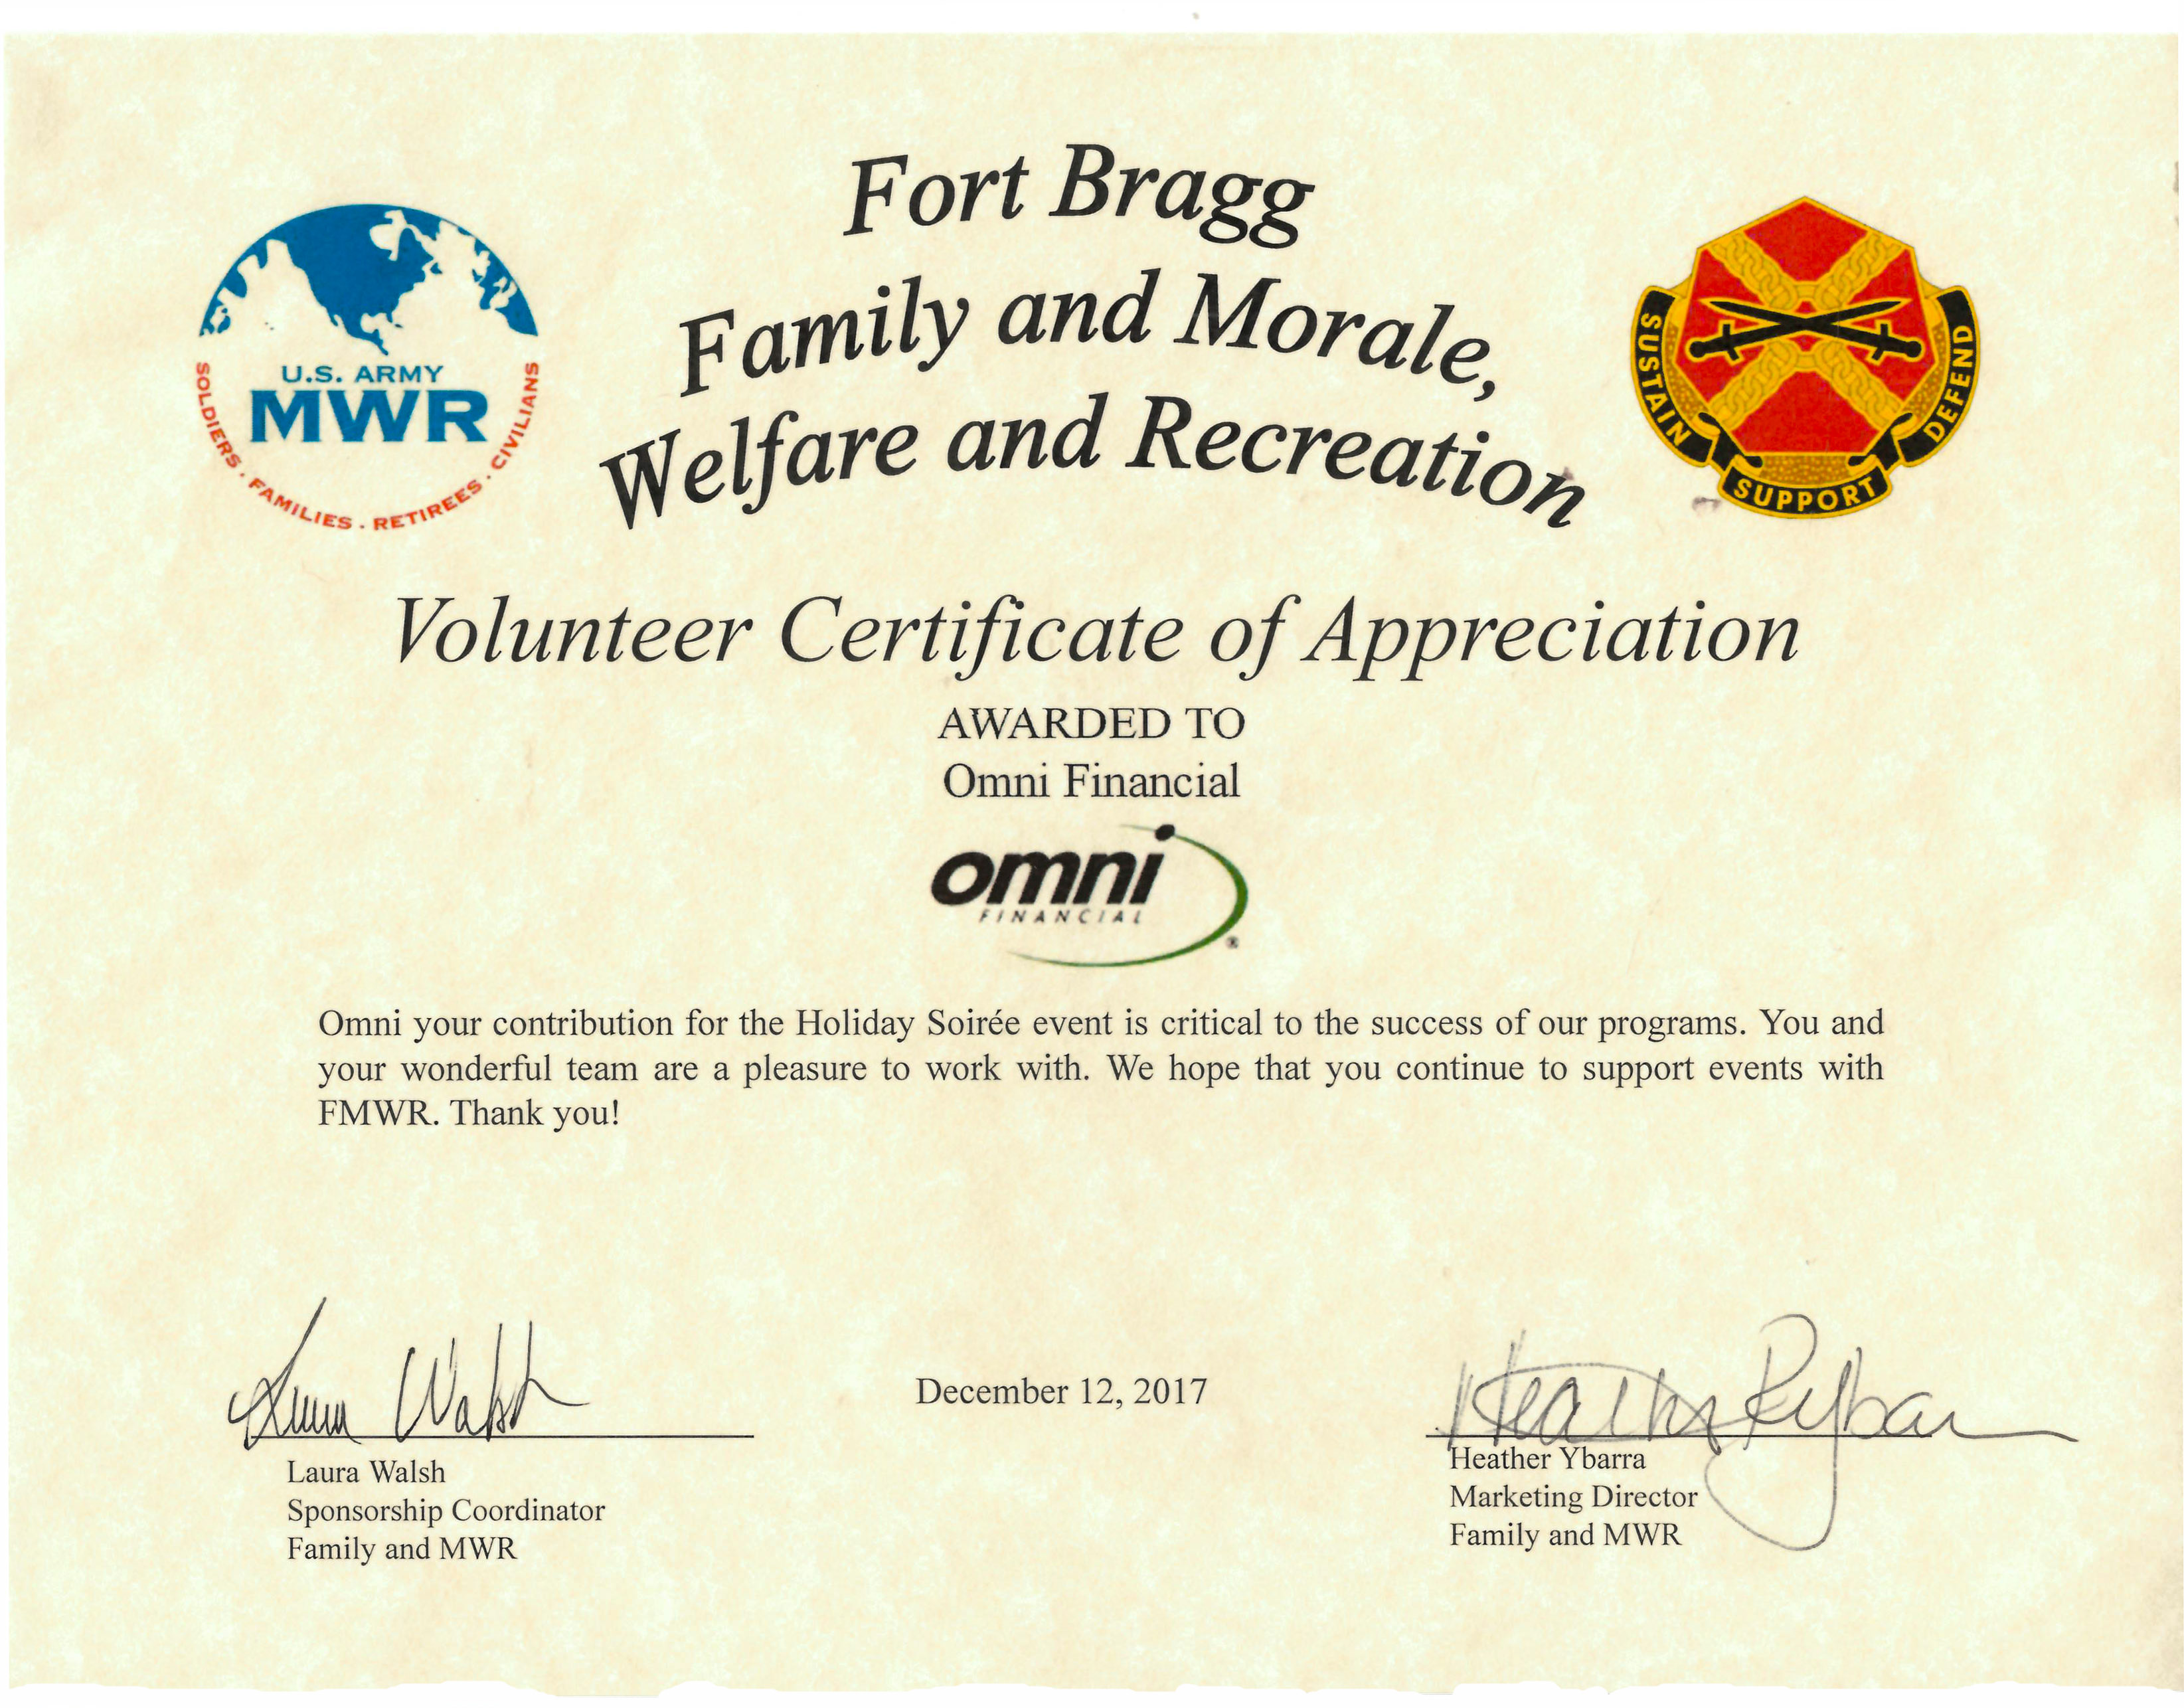 accolades archive omni financial® fort bragg mwr volunteer certificate of appreciation holiday soiree 2017